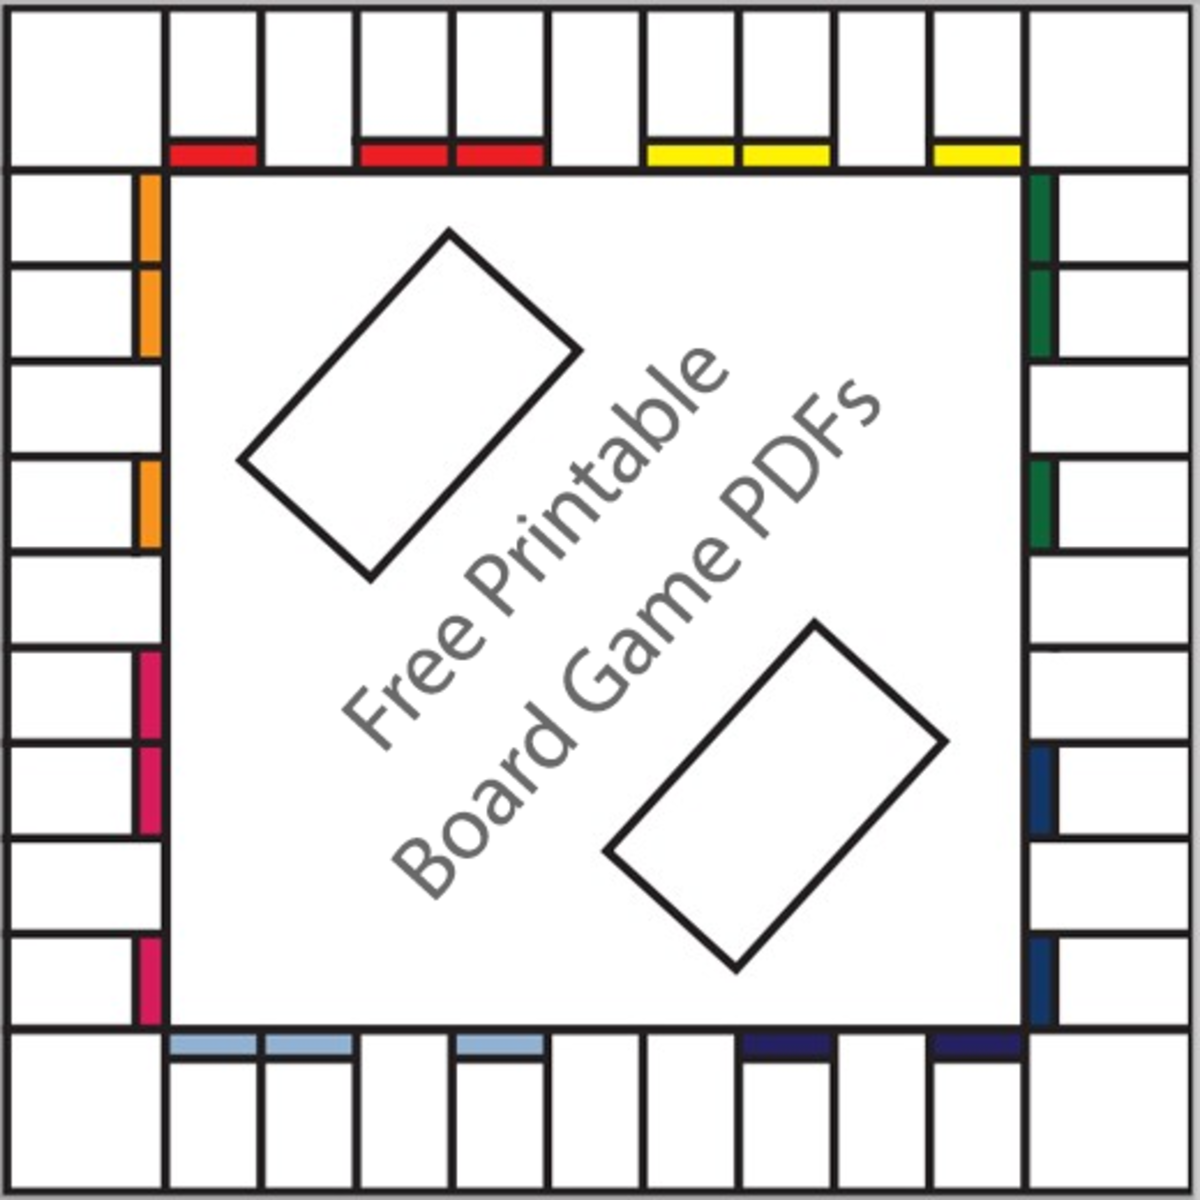 16 Free Printable Board Game Templates wTHiC95v